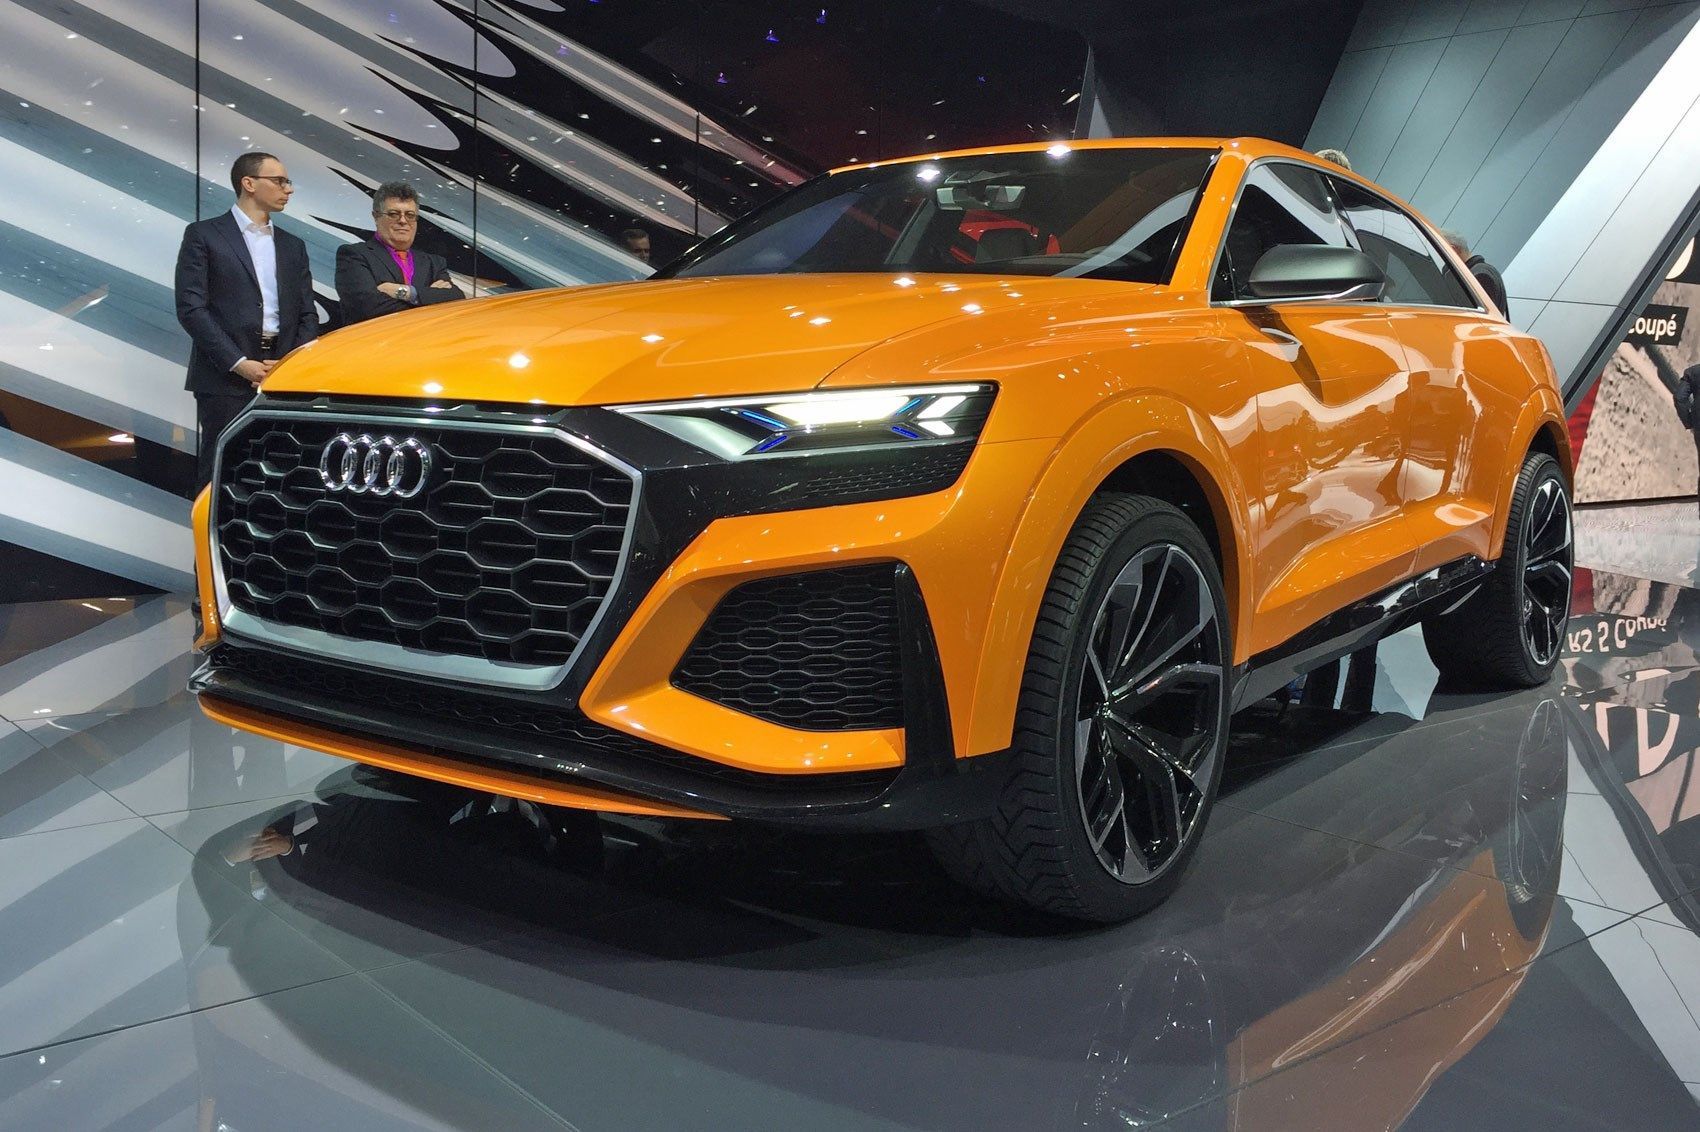 Again With More Intensity Audi Q8 Concept Returns As A Hot Hybrid By Car Magazine Sesto Elemento